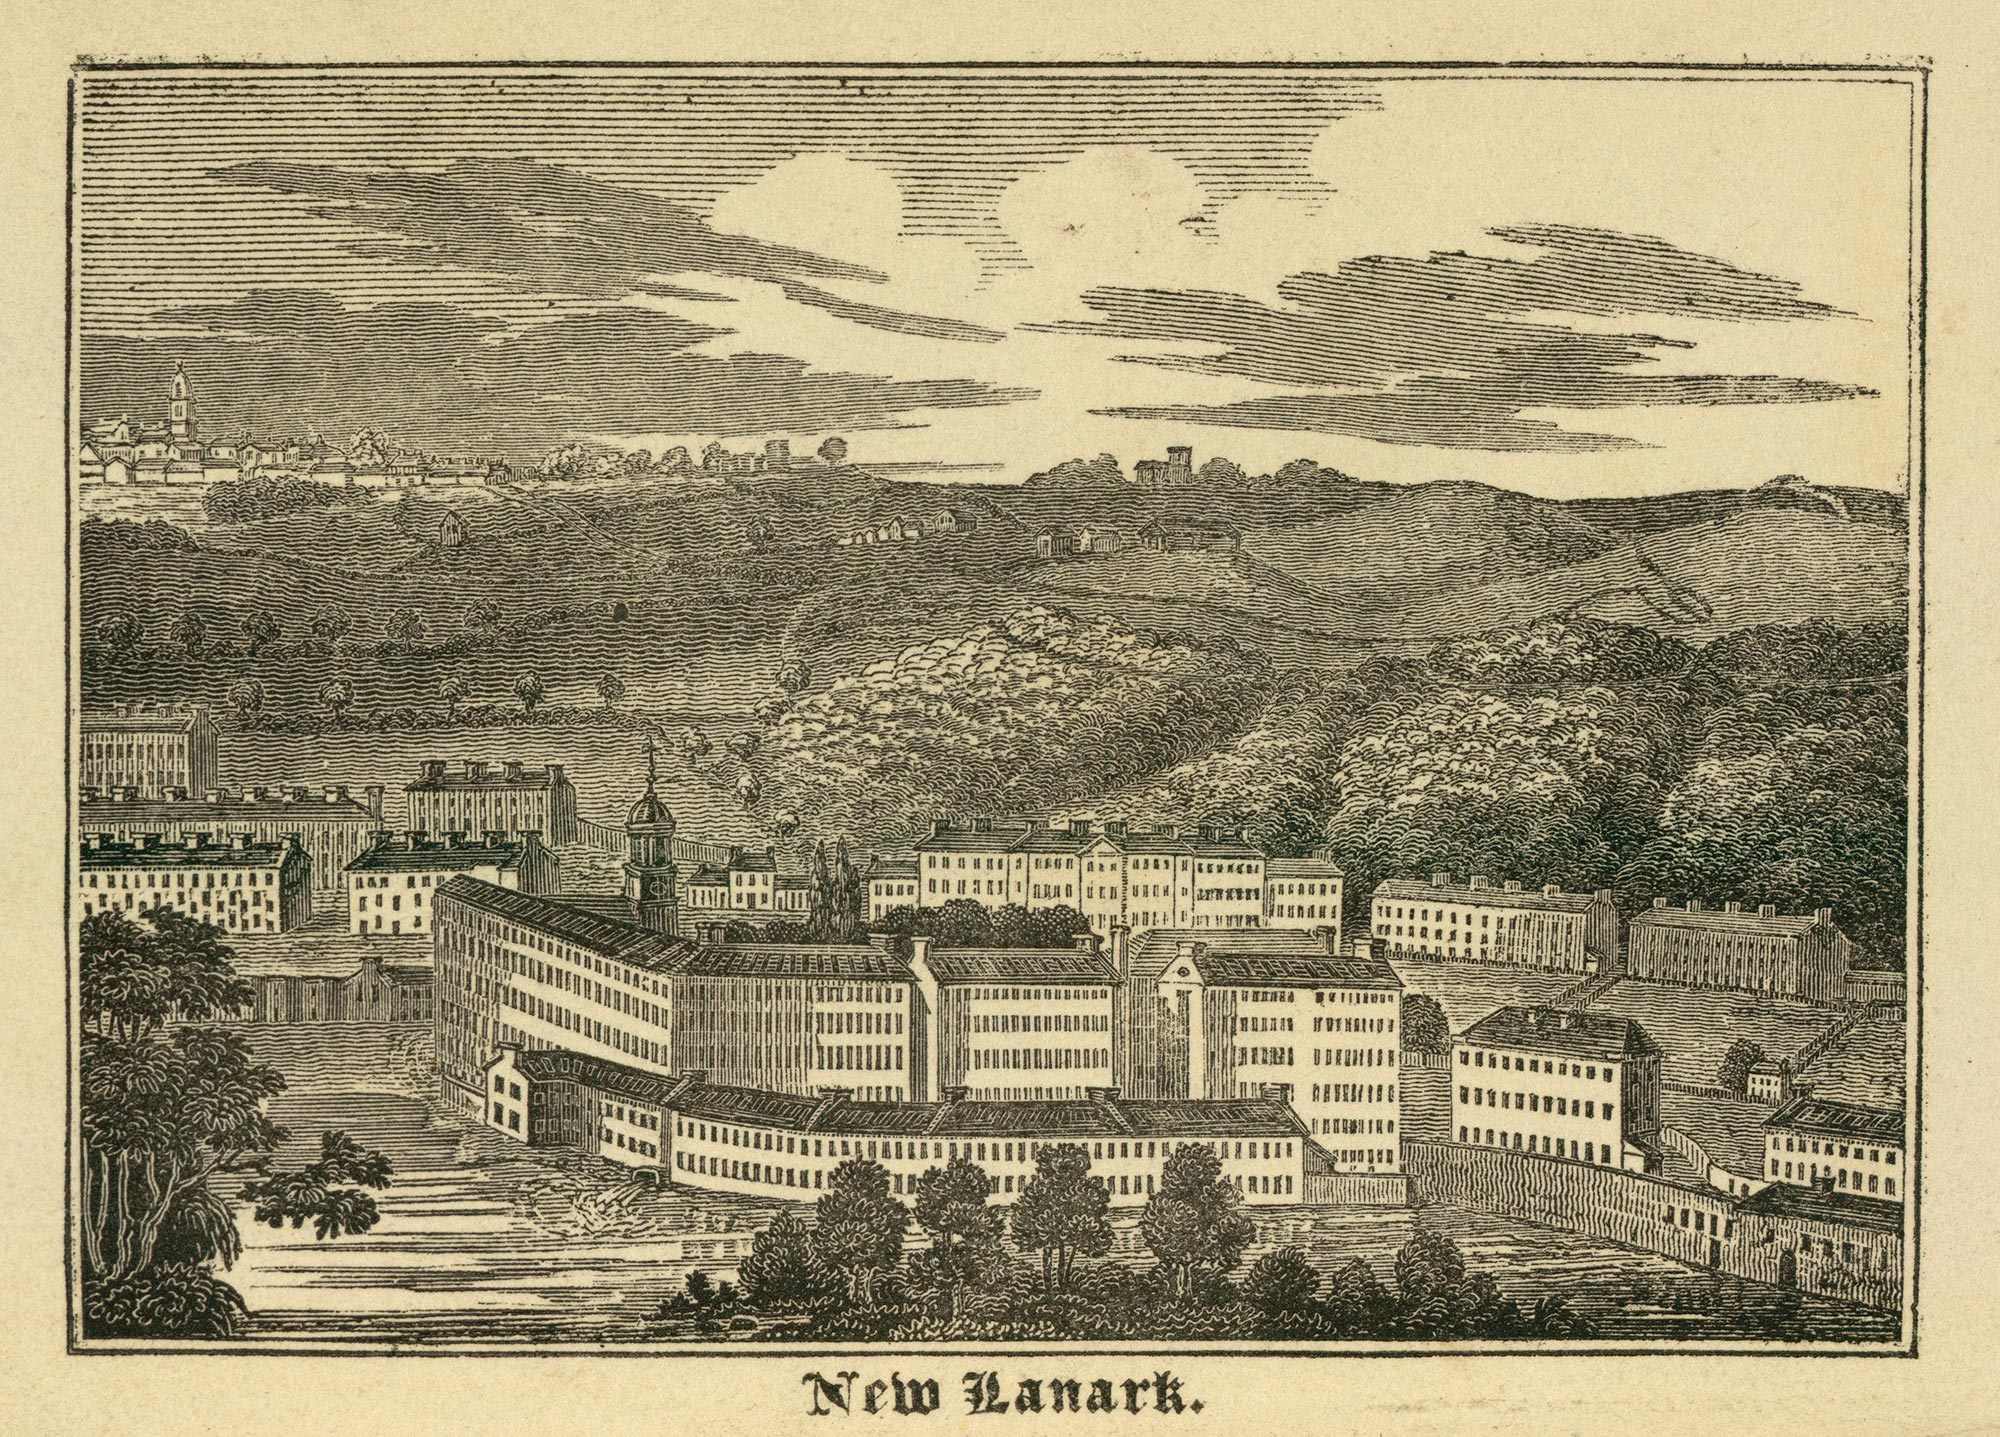 Illustration of New Lanark, a cotton mill village